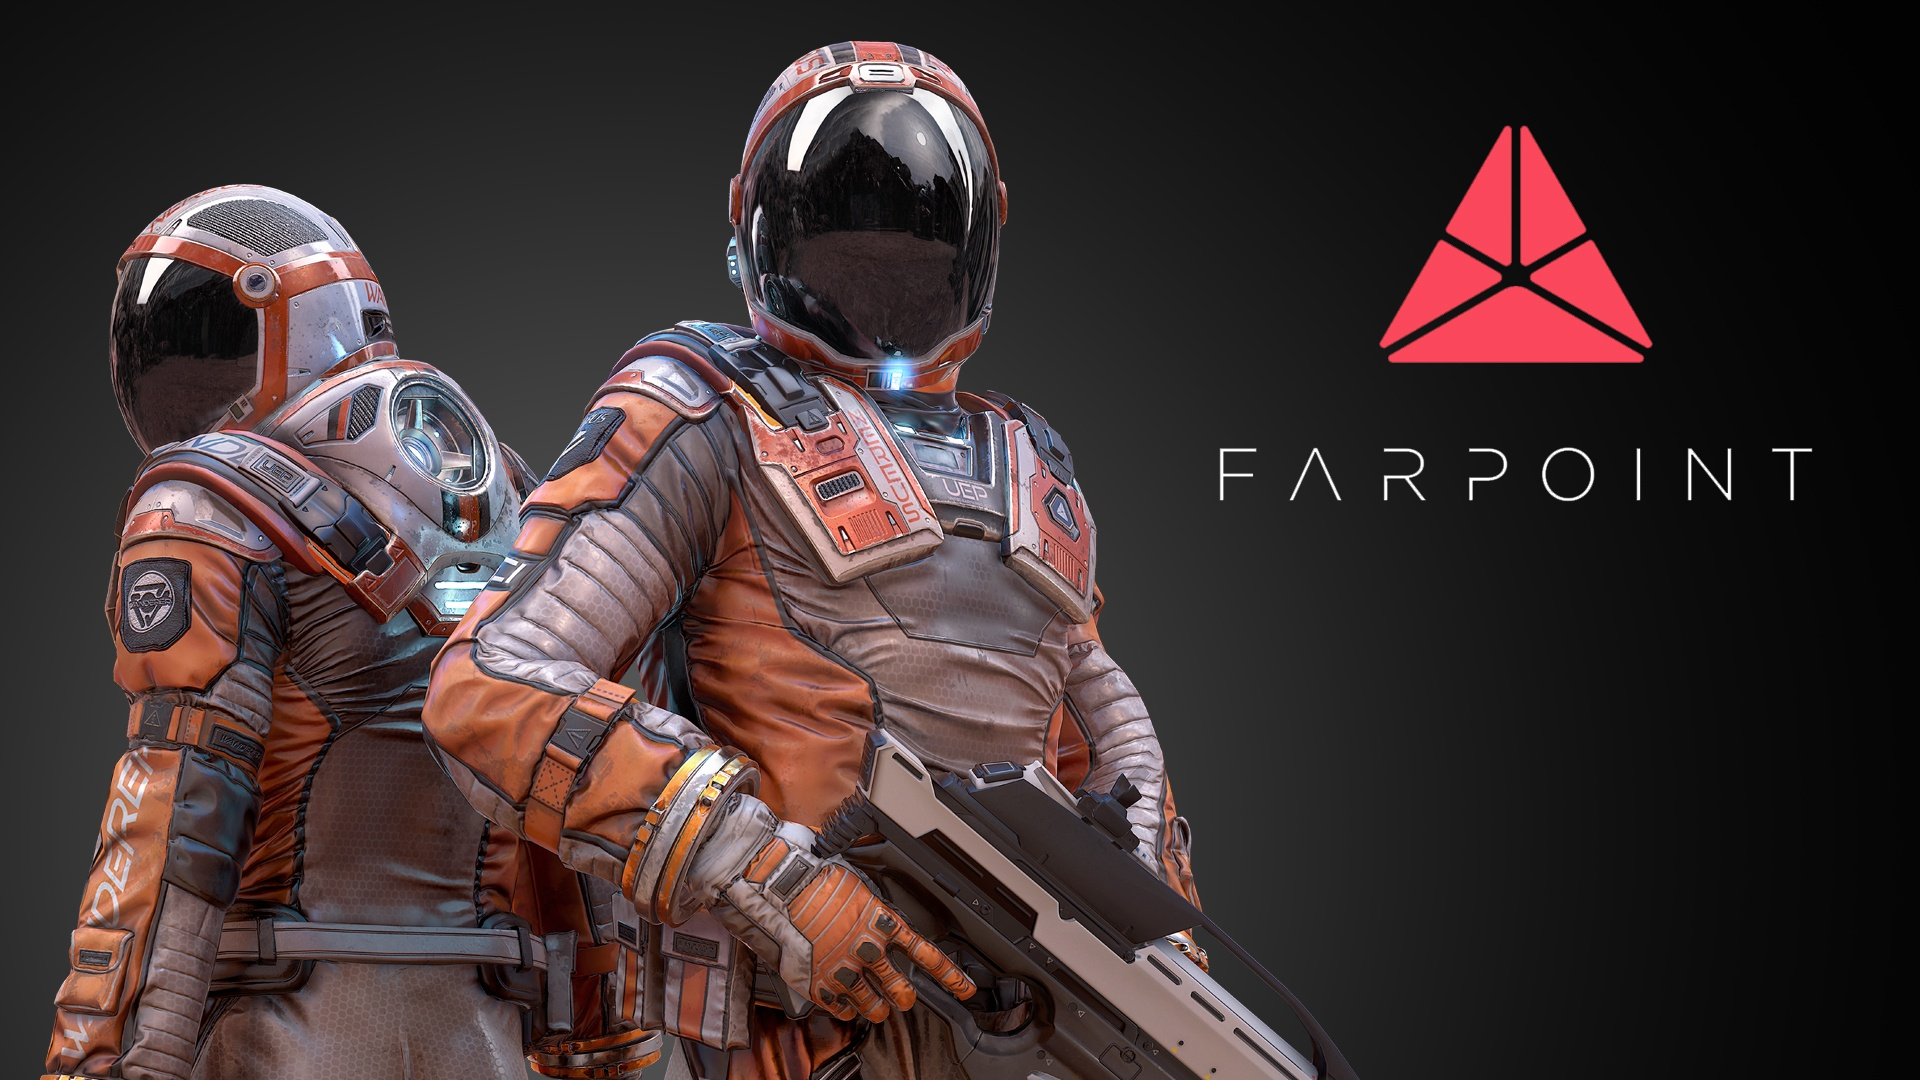 farpoint hd desktop wallpaper 67799